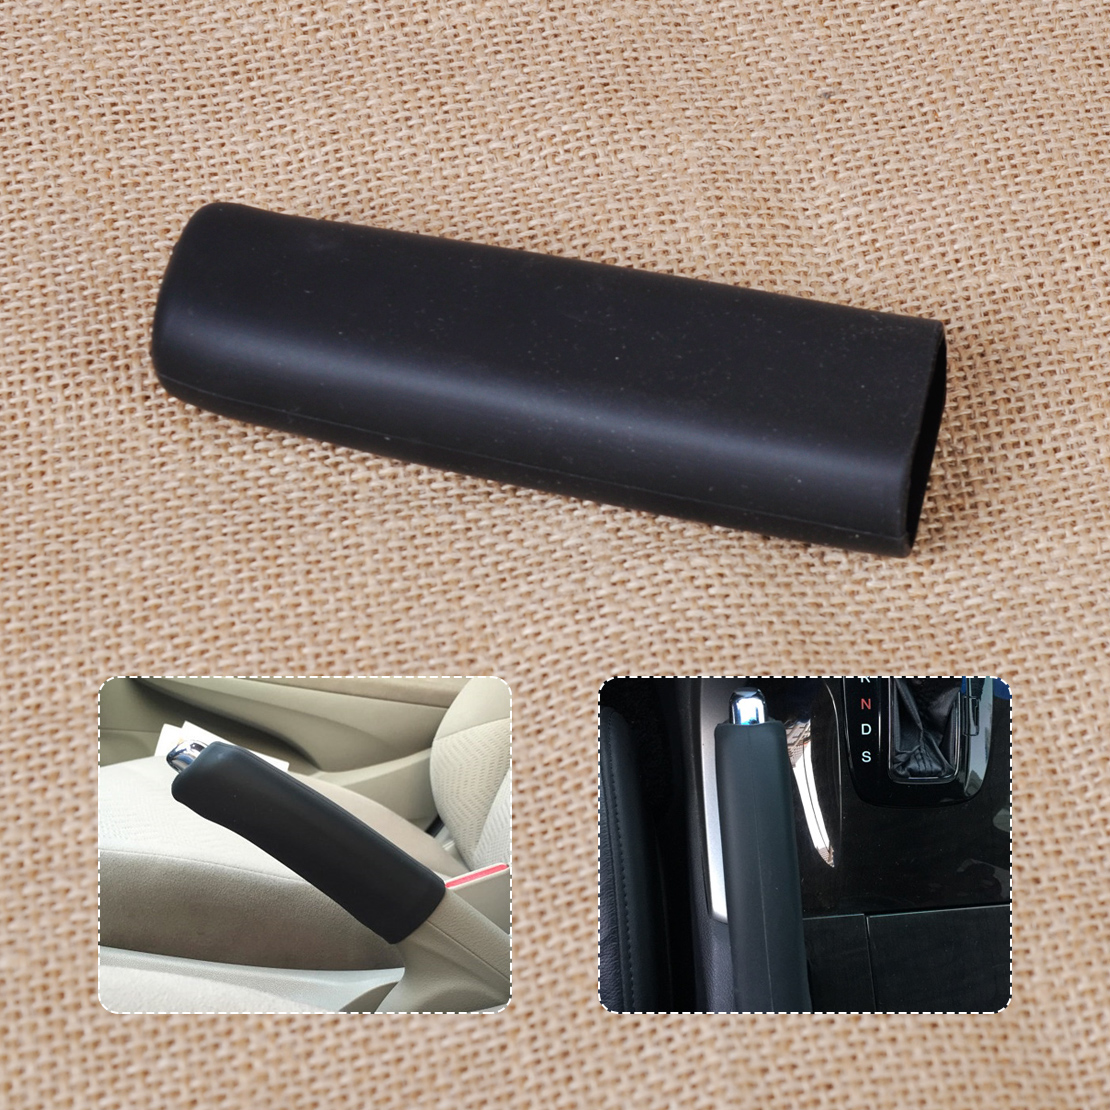 beler Car Auto Silicone Gel Parking Hand Brake Anti Slip Cover Case Sleeve Black for VW Audi BMW Mercedes-Benz Mazda3 Buick